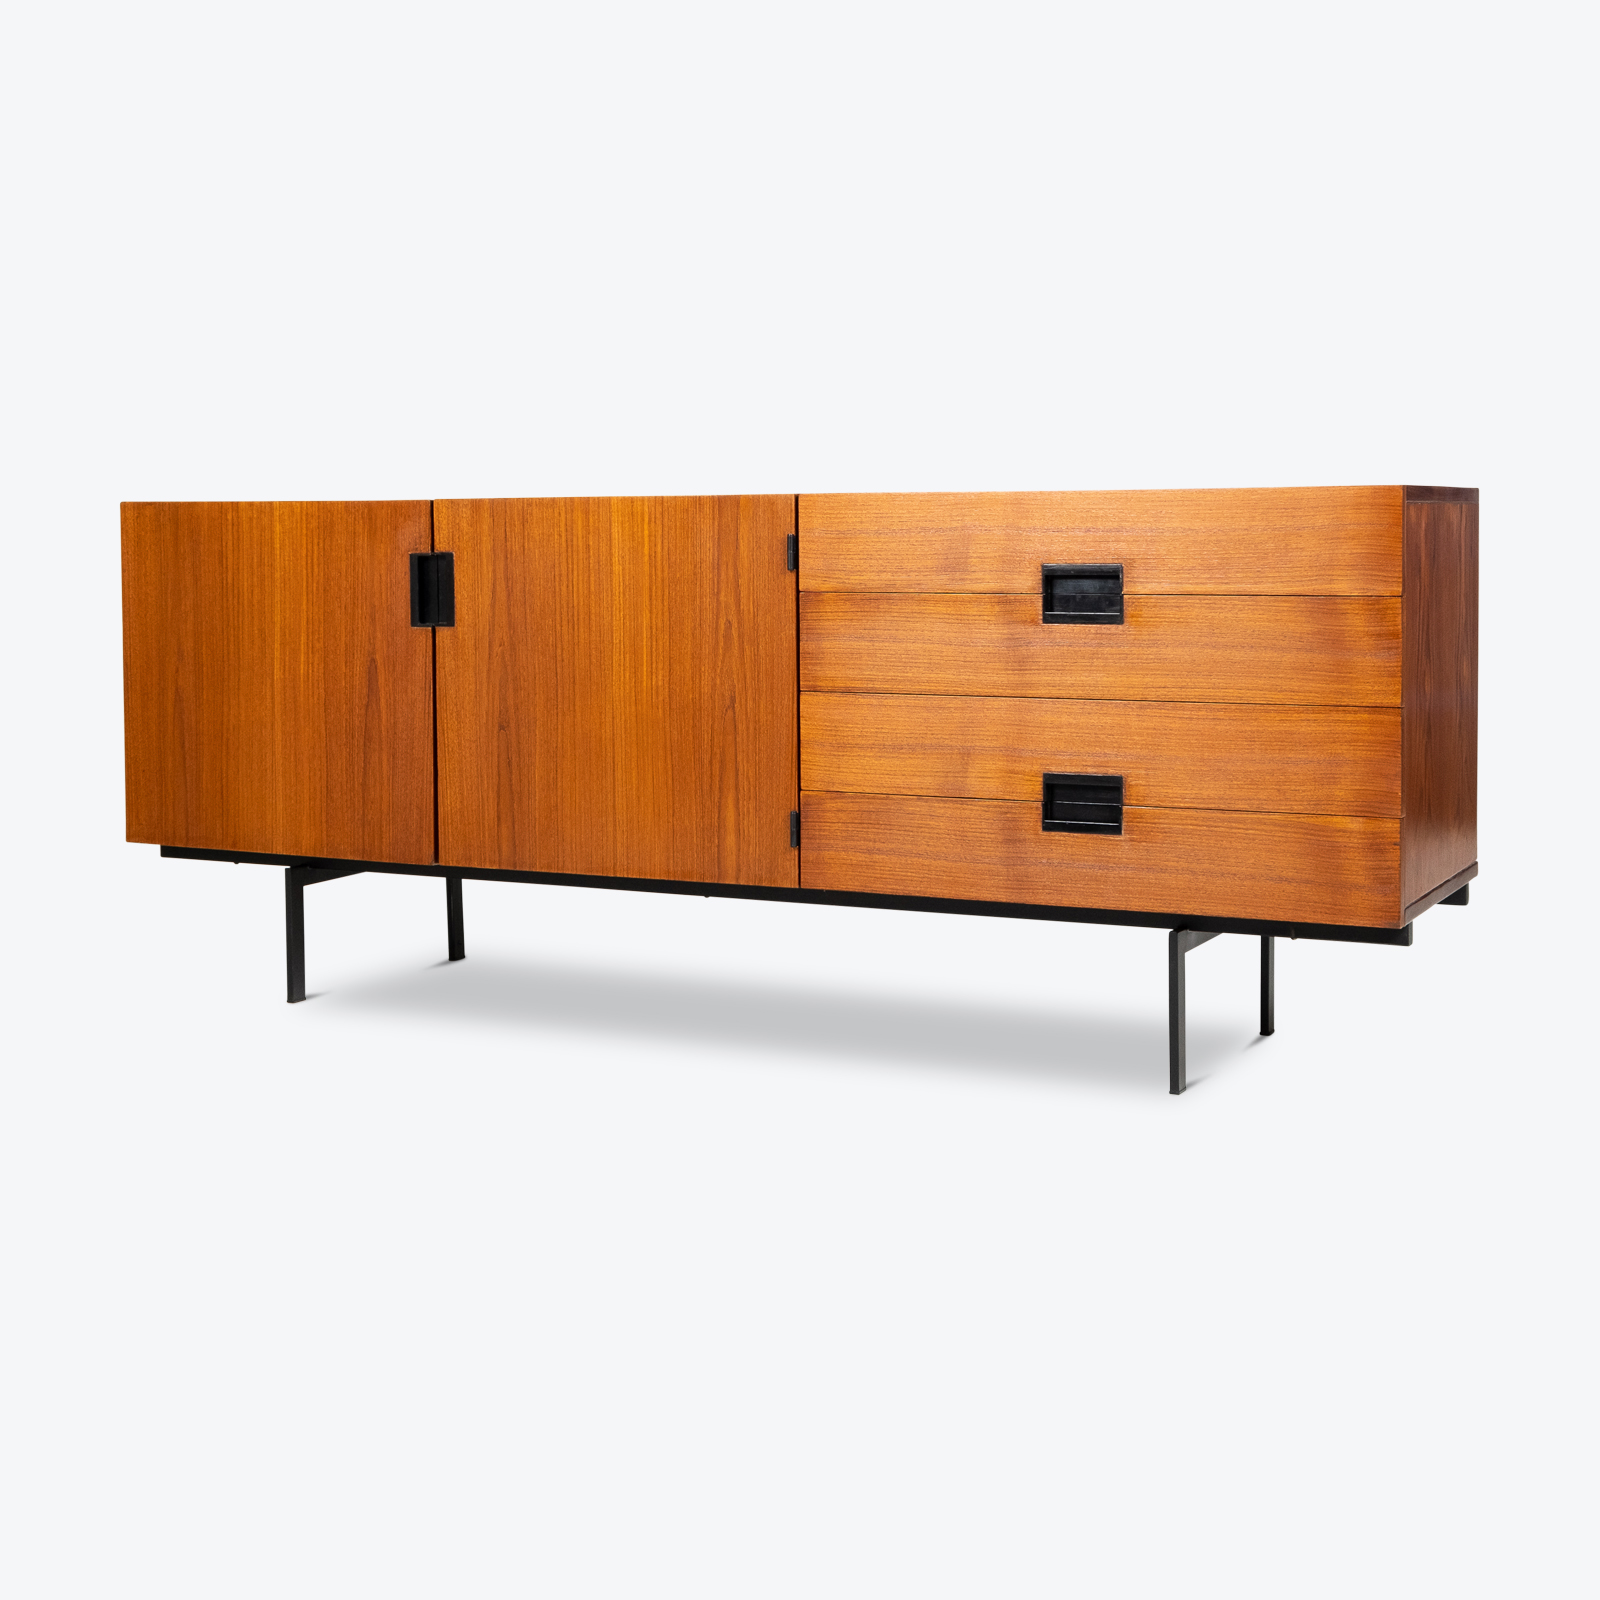 Du04 Japanese Series Sideboard By Cees Braakman For Pastoe, 1950s, The Netherlands Hero